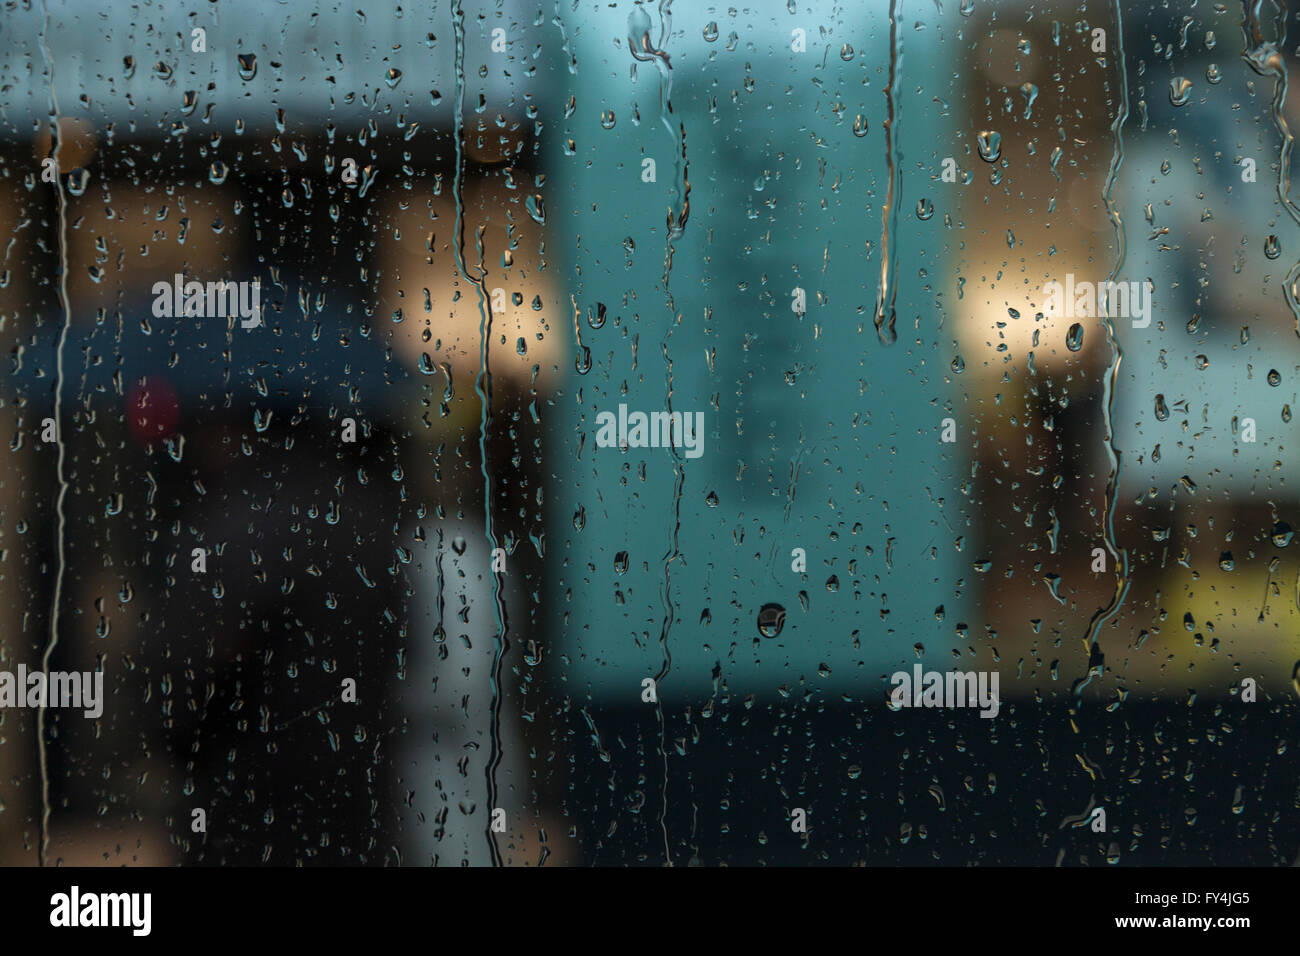 Rain in the bus - Stock Image